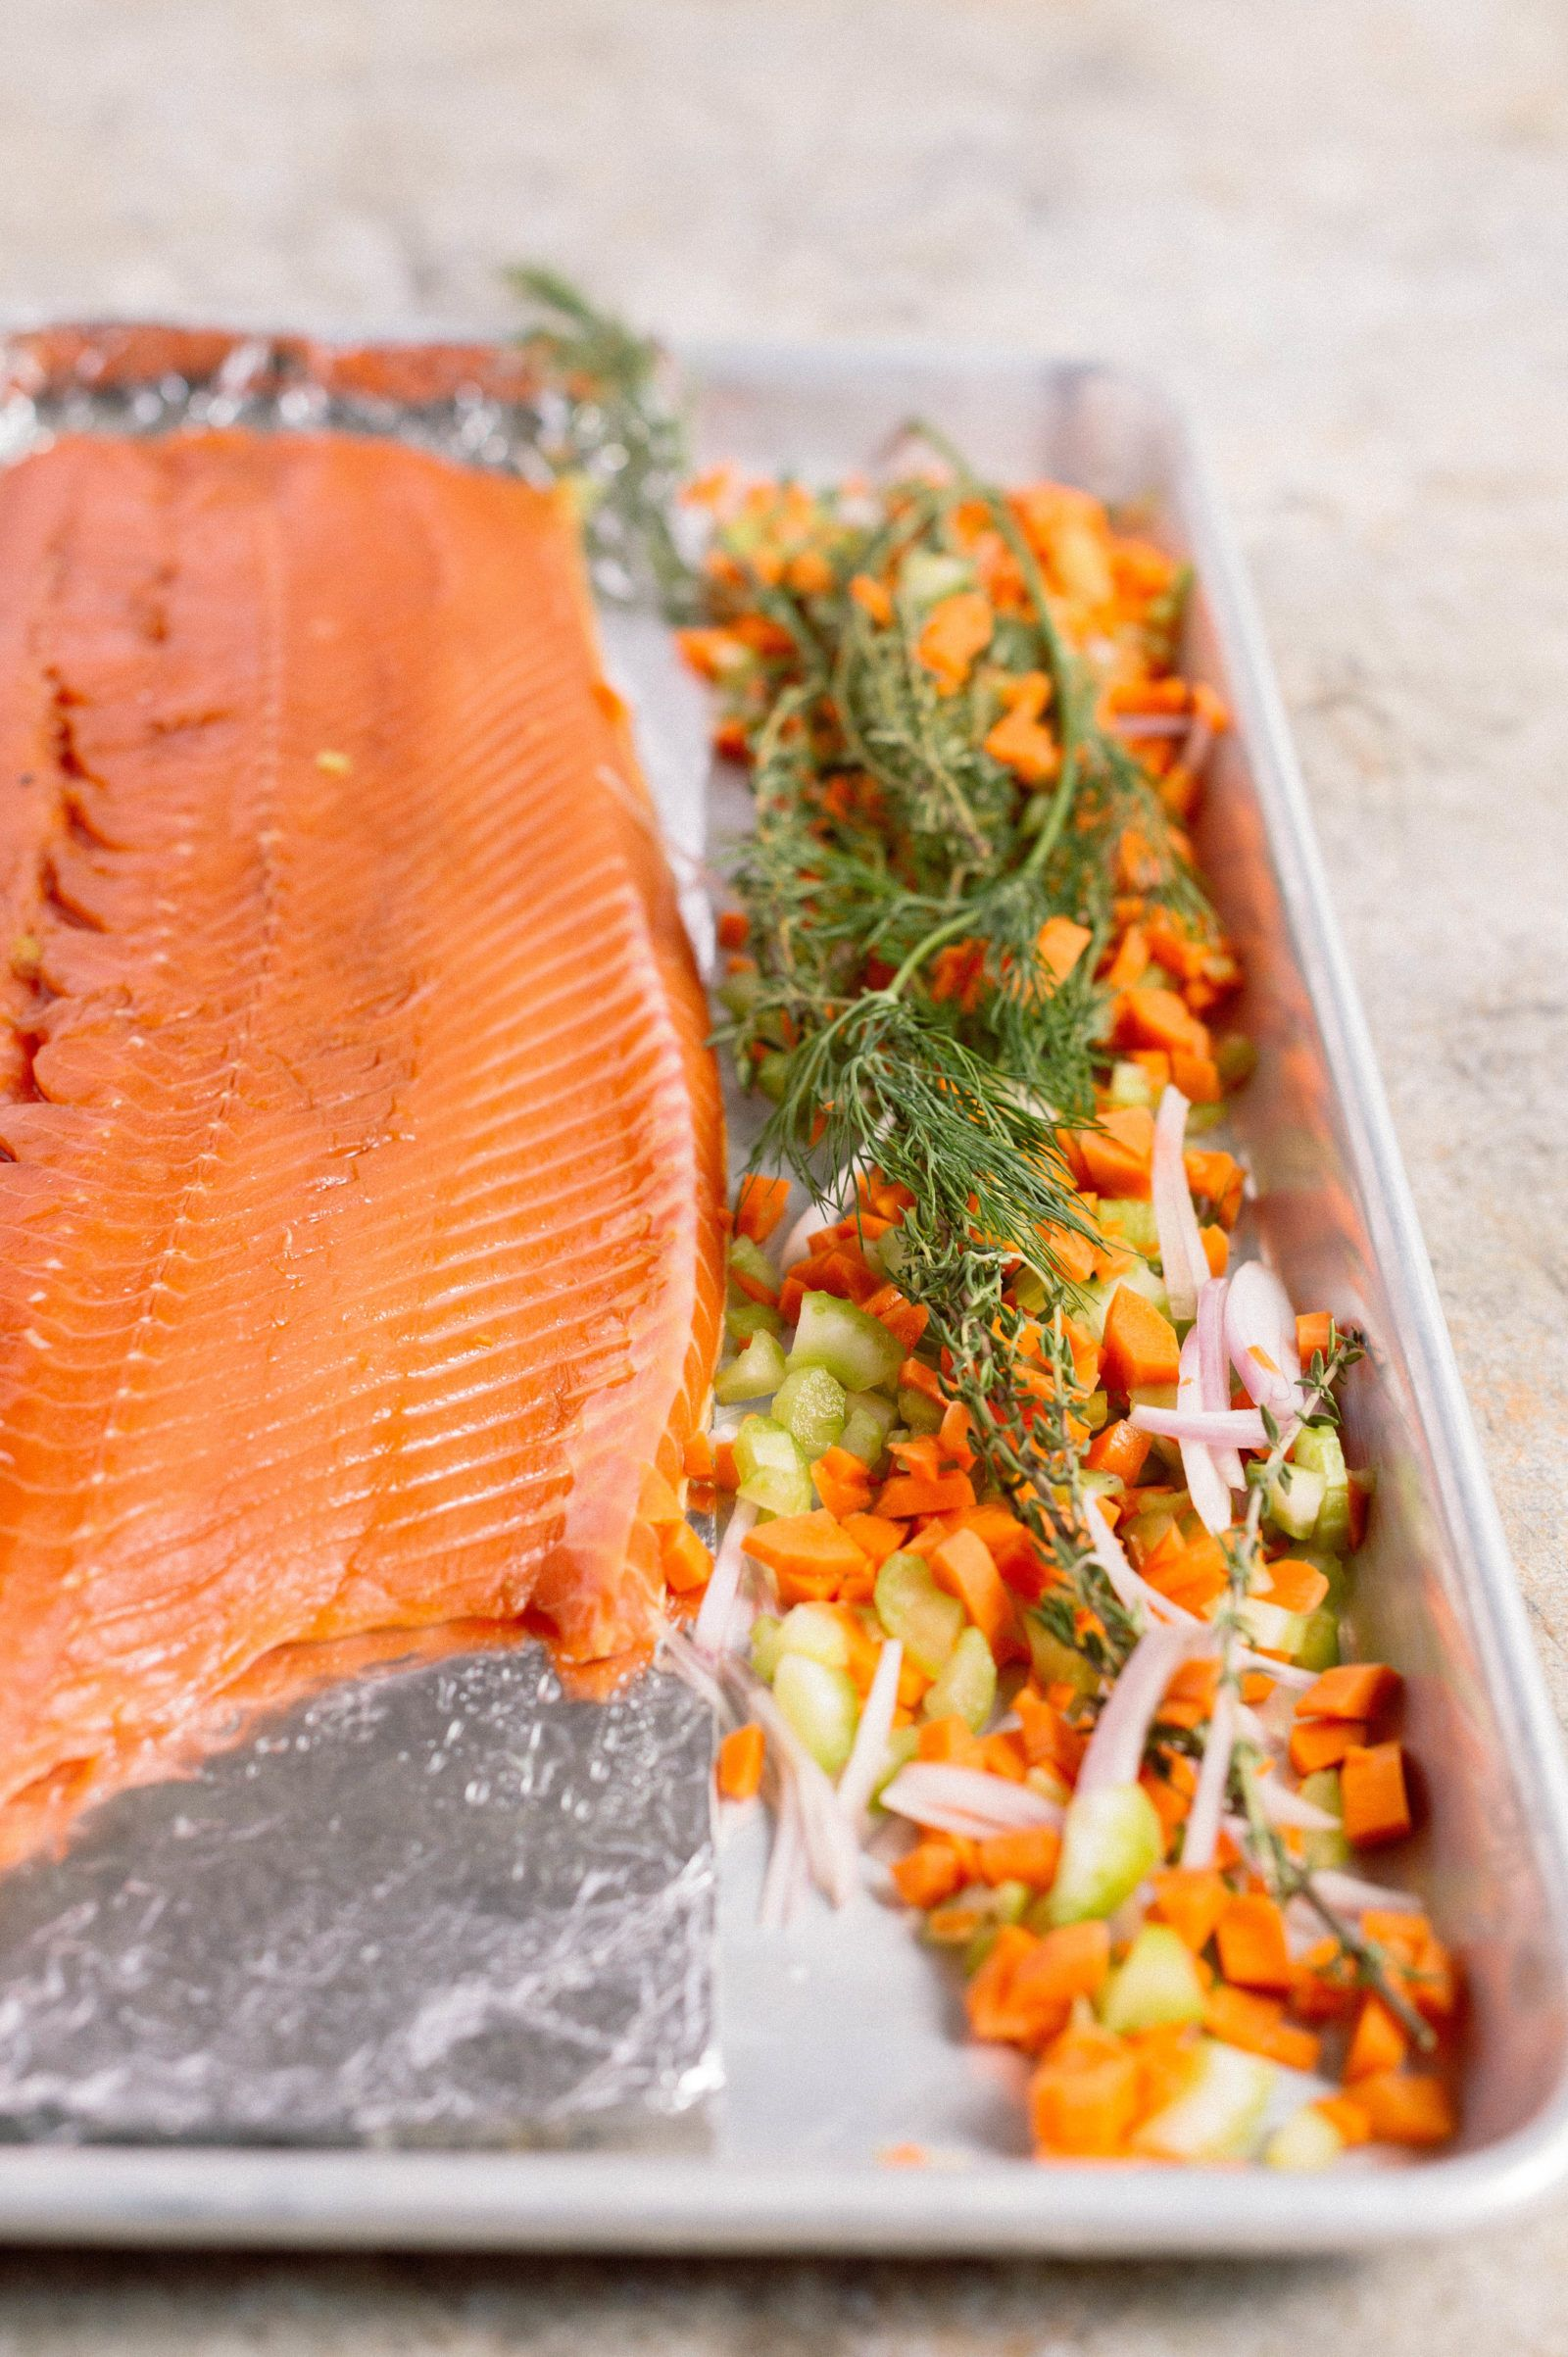 What and how can you make salmon fish from milk